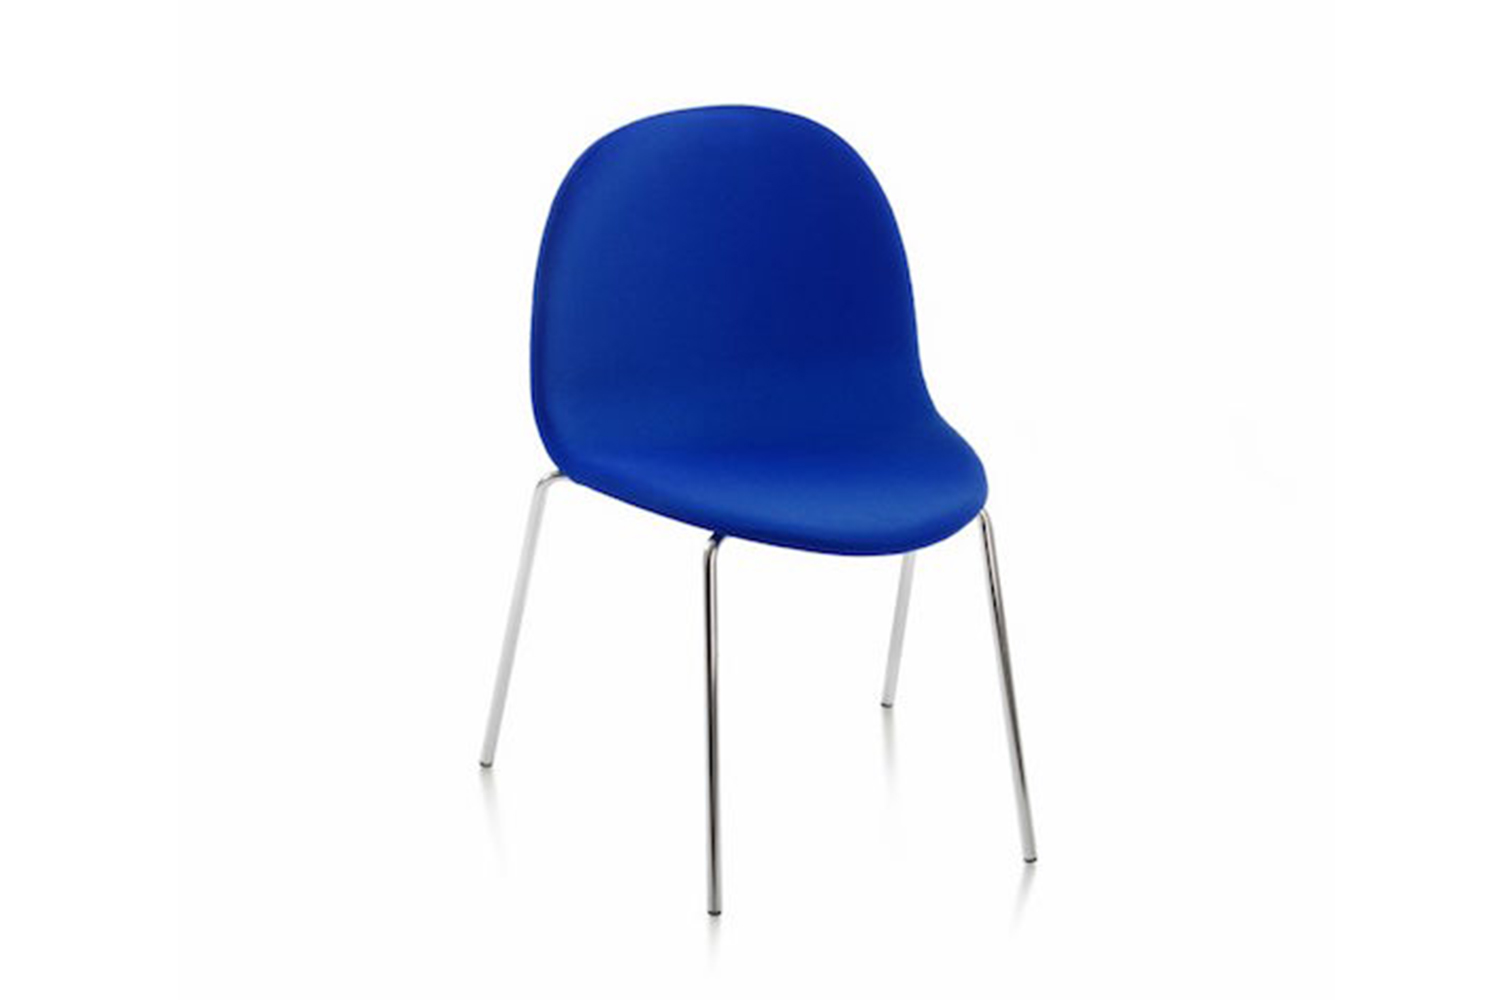 Etabeta is made of plywood with metal piping for the legs, and each chair is designed to be stackable.